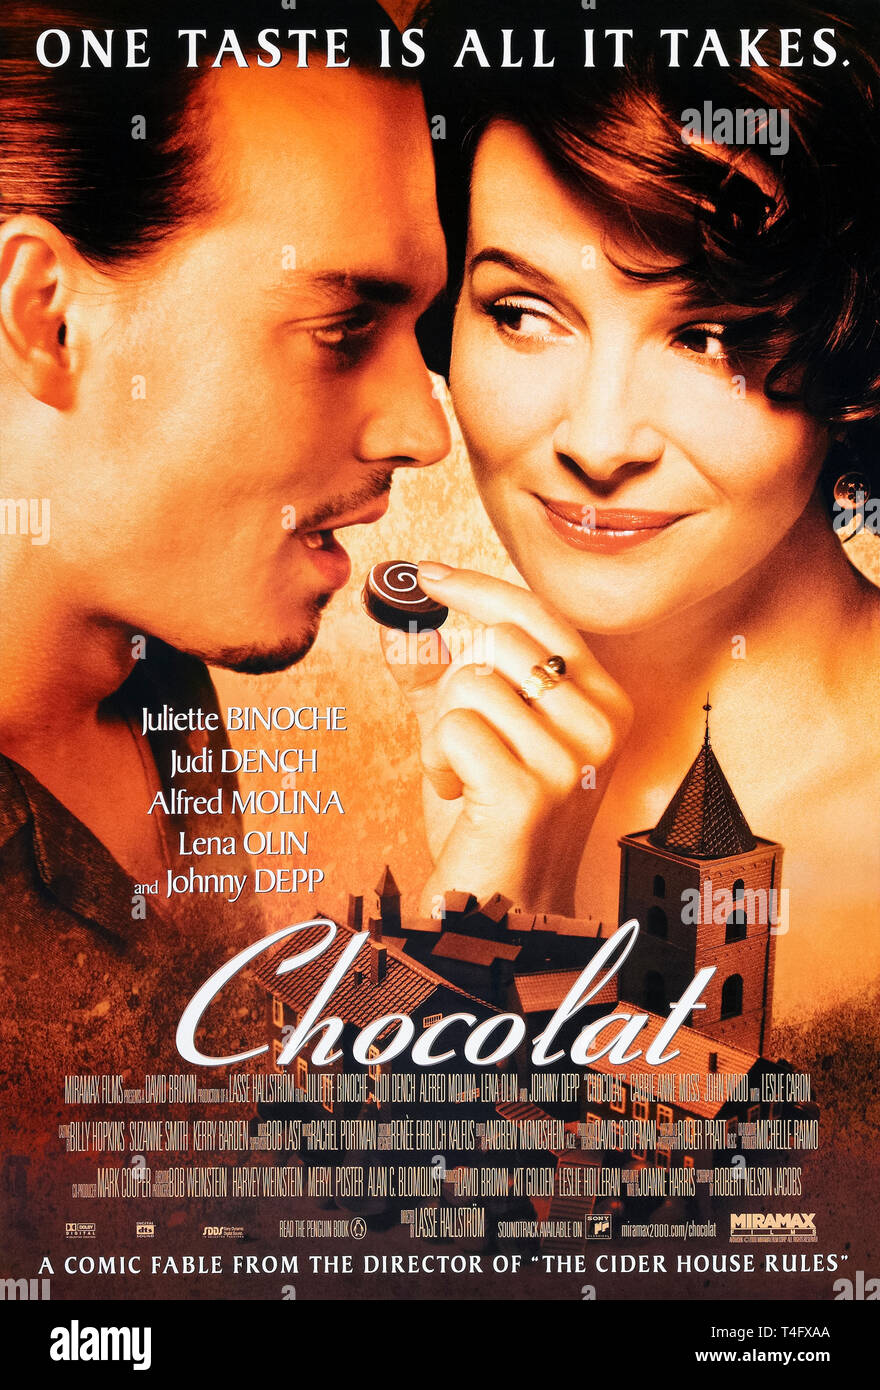 Chocolat (2000) directed by Lasse Hallström and starring Juliette Binoche, Judi Dench and Alfred Molina. Romantic comedy adaptation of Joanne Harris' novel about a small chocolaterie and its effect on the local community. - Stock Image